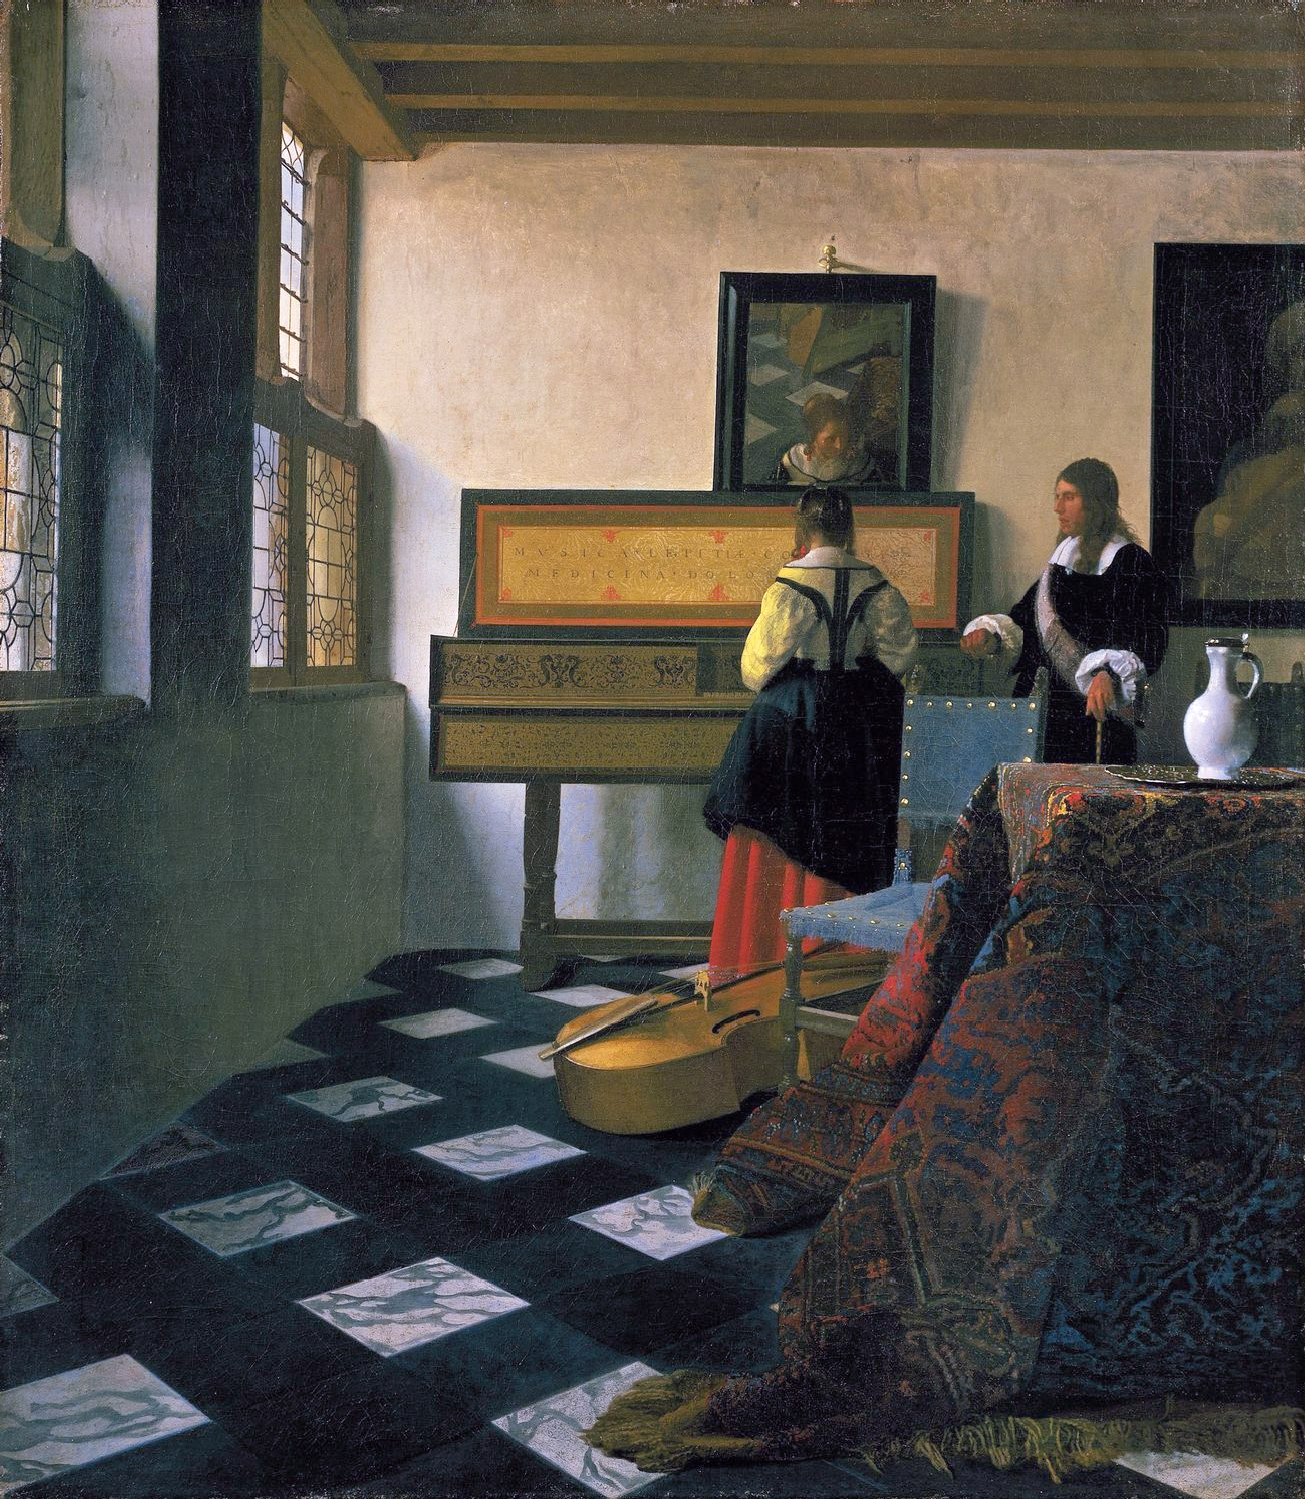 Johannes Vermeer,The Music Lesson, c. 1662,Royal Collection,St. James's Palace,London